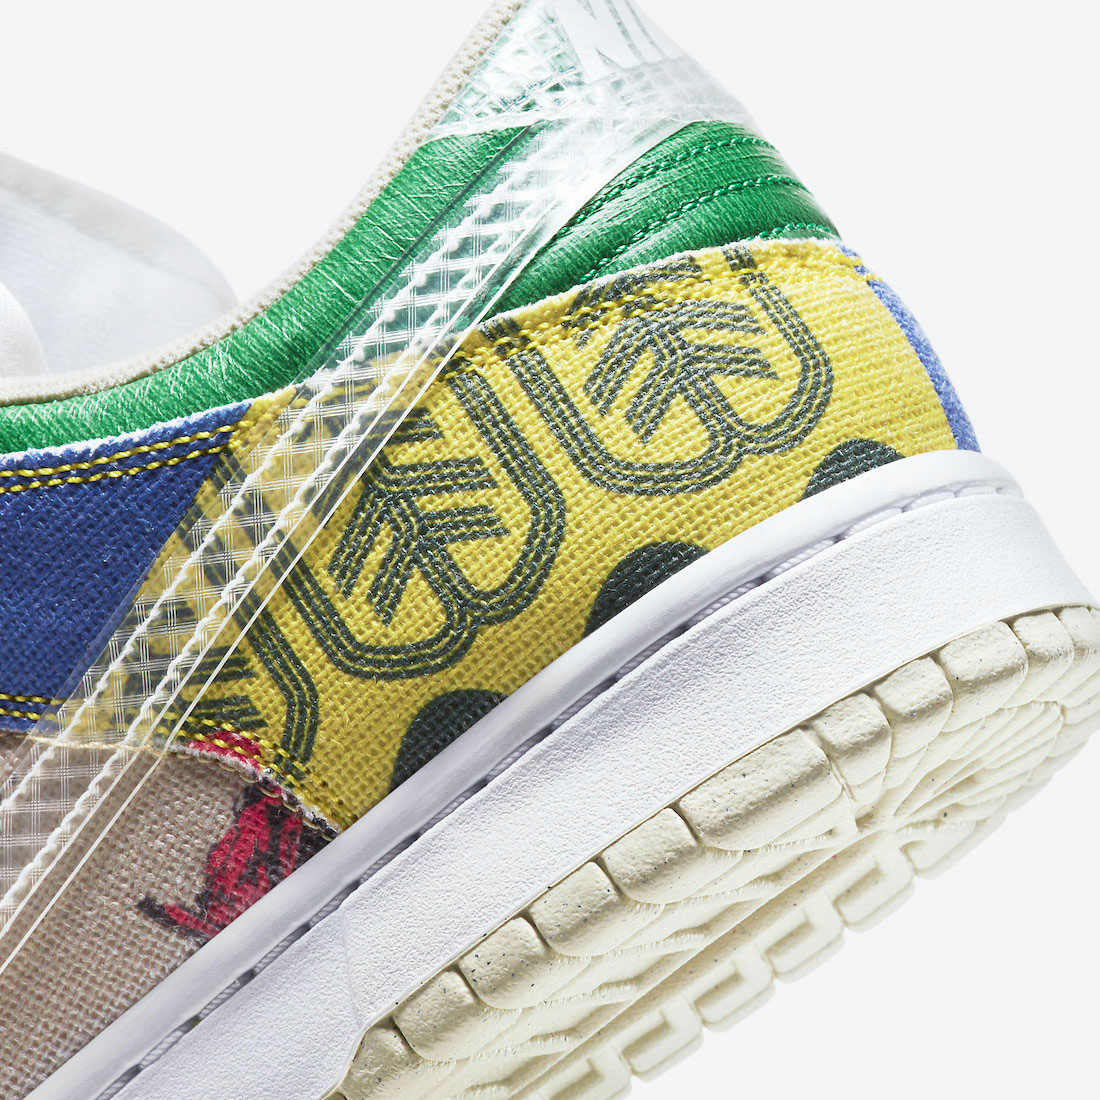 nike-dunk-low-city-market-release-date-price-where-to-buy-8